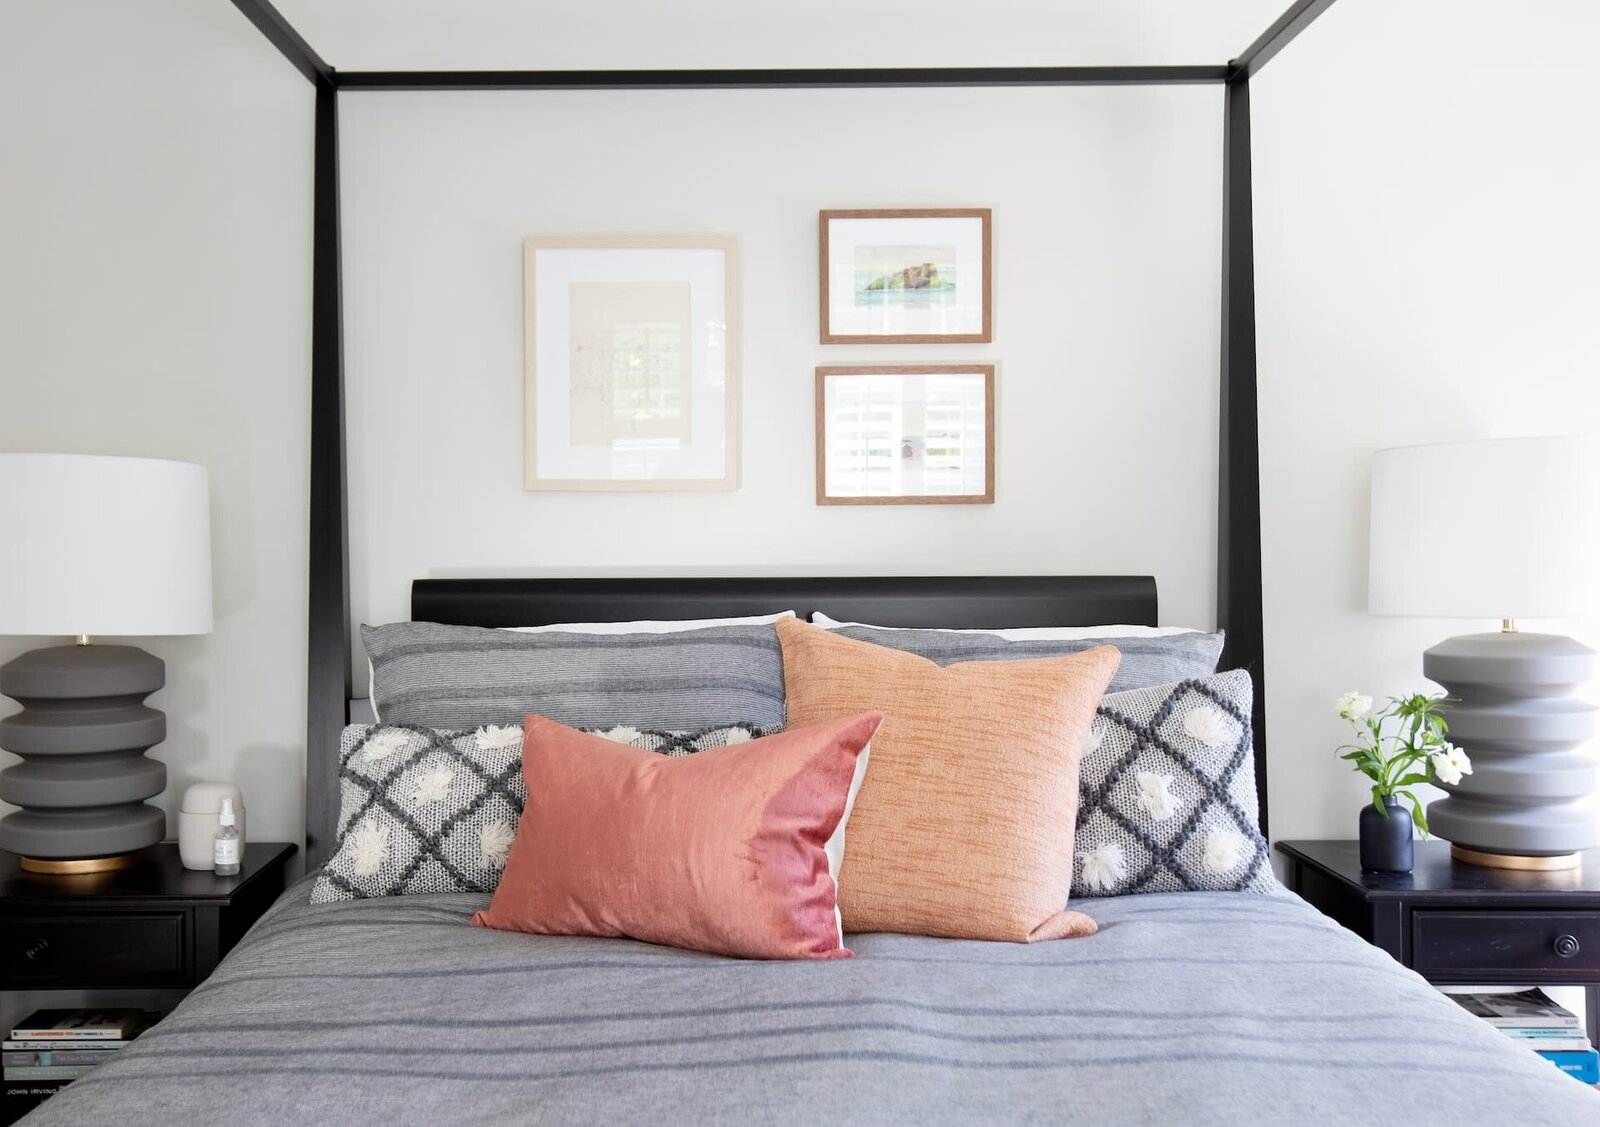 Granville Street l Canopy Bed with Peachy Tone Pillows and Mini Gallery Wall above Bed